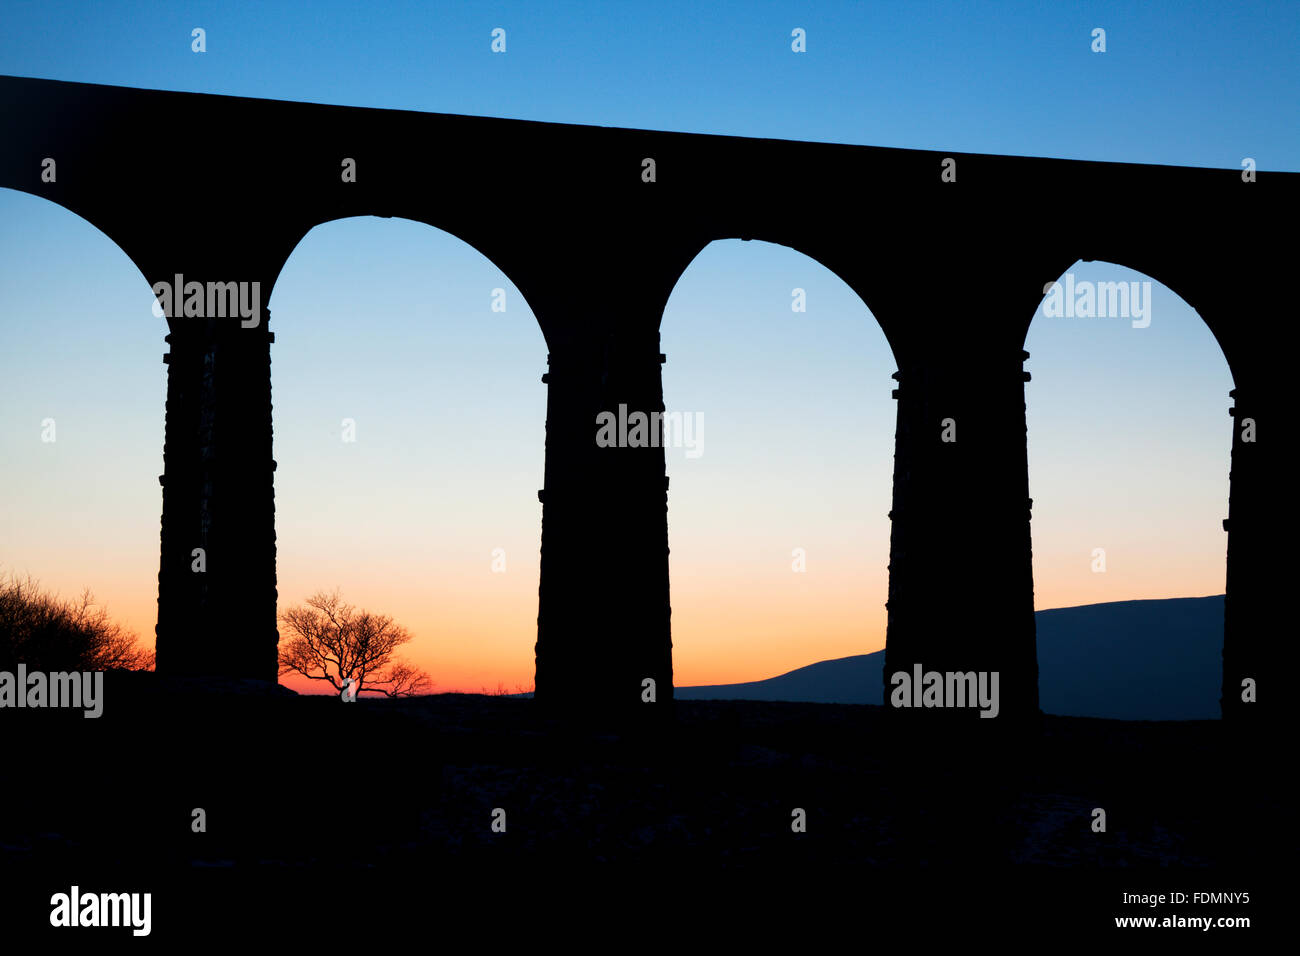 Arches of the Ribblehead Viaduct at Dusk Ribblehead Yorkshire Dales England Stock Photo